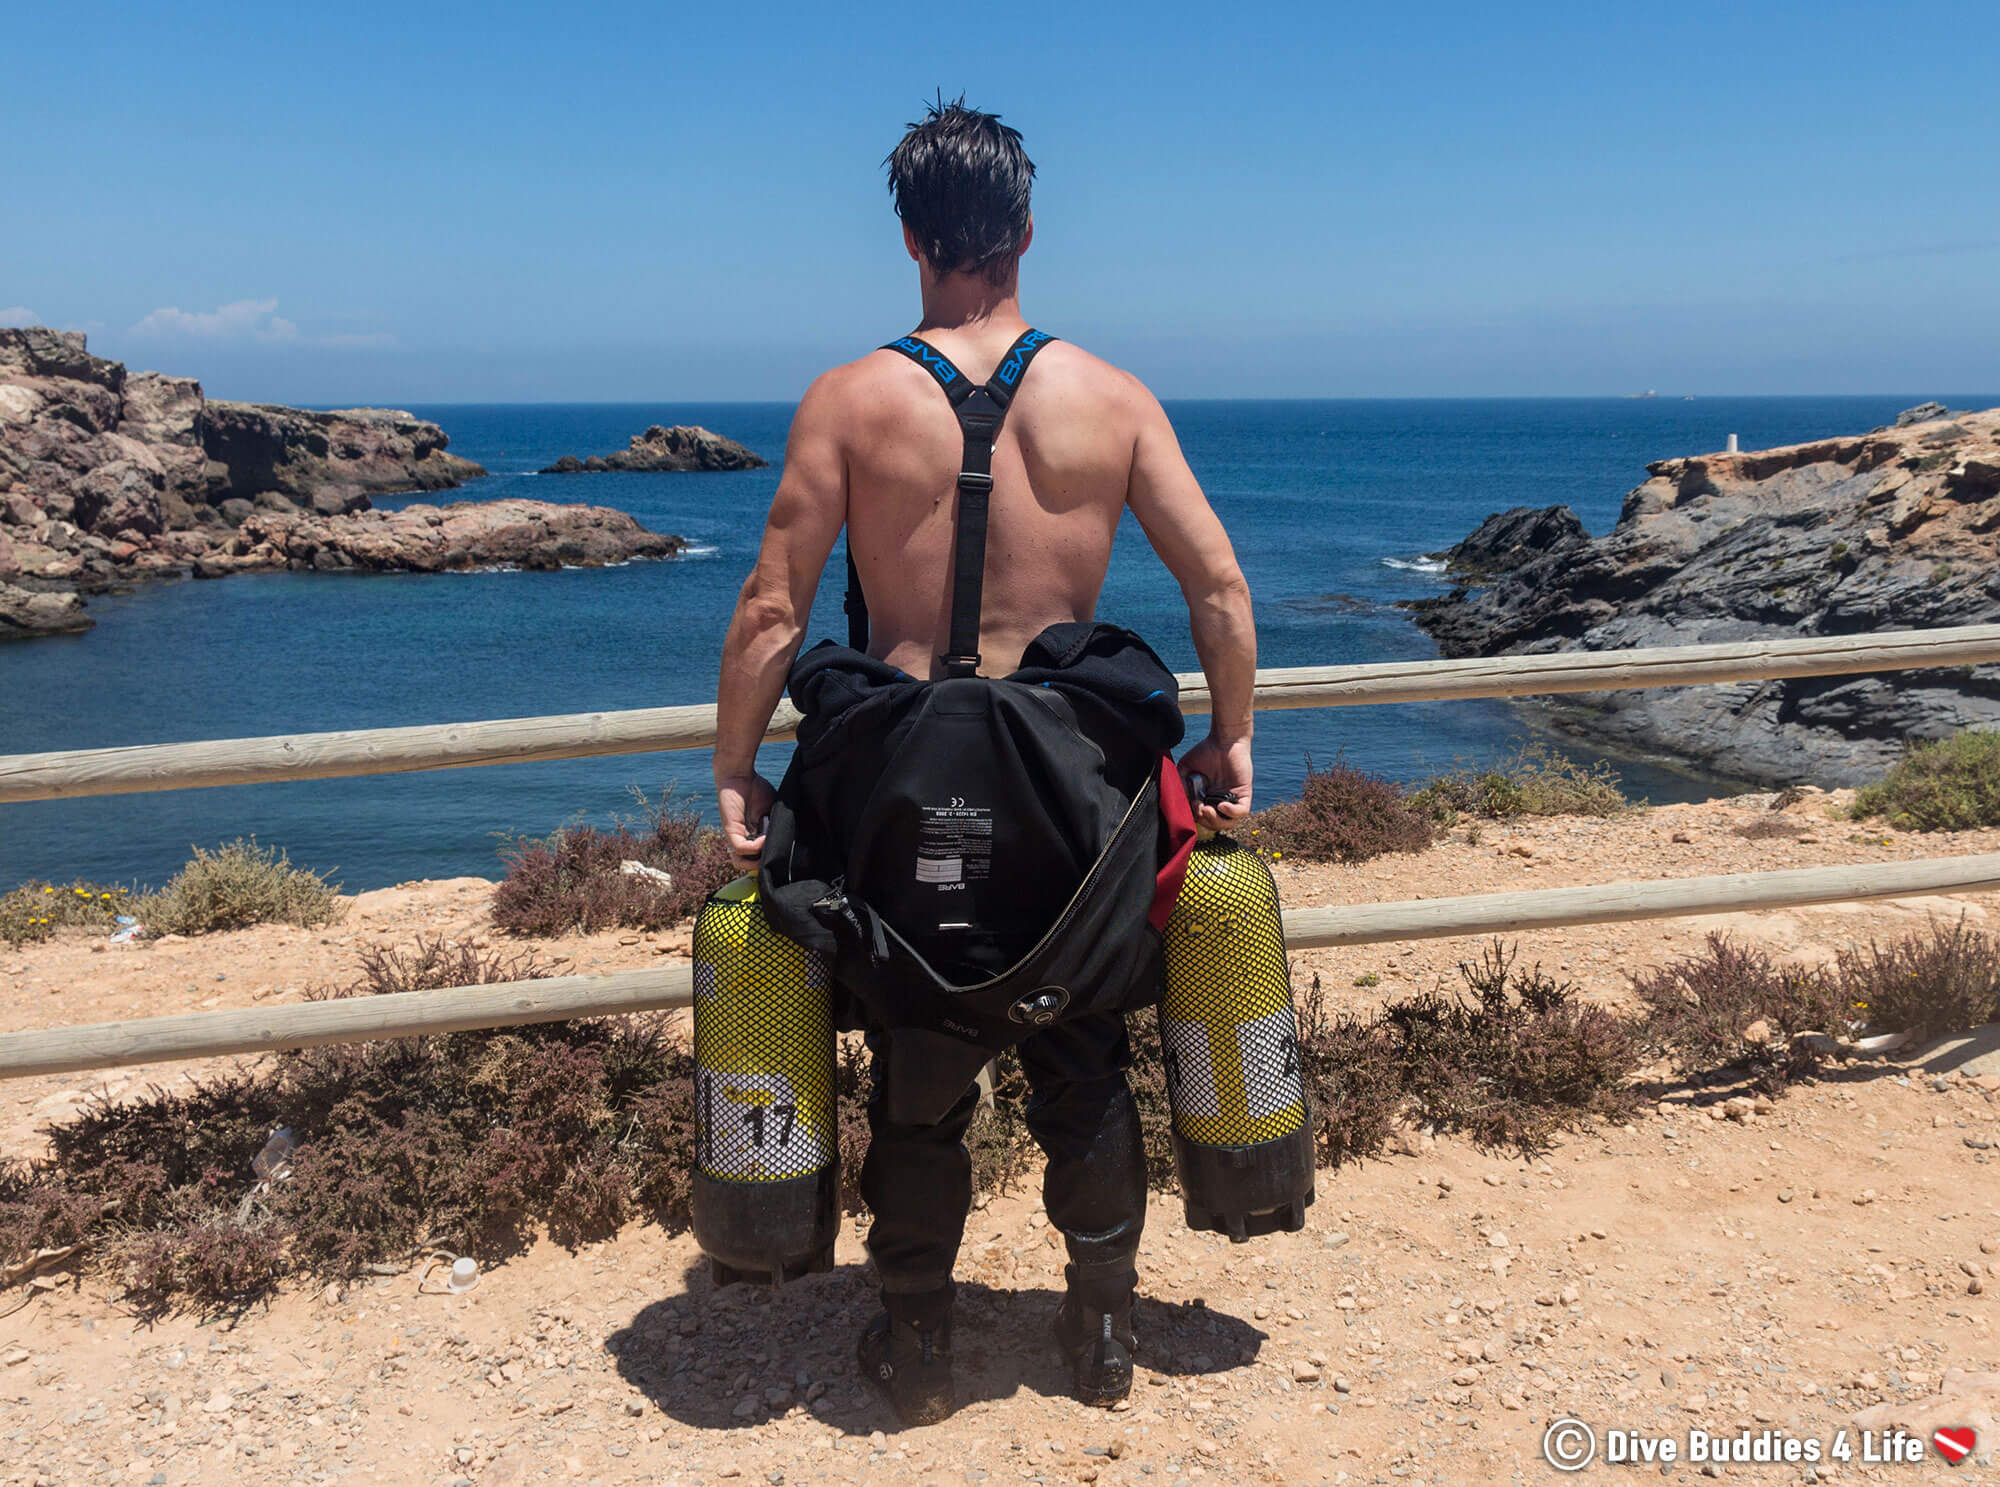 Joey Gazing Off Into The Horizon With Scuba Tanks